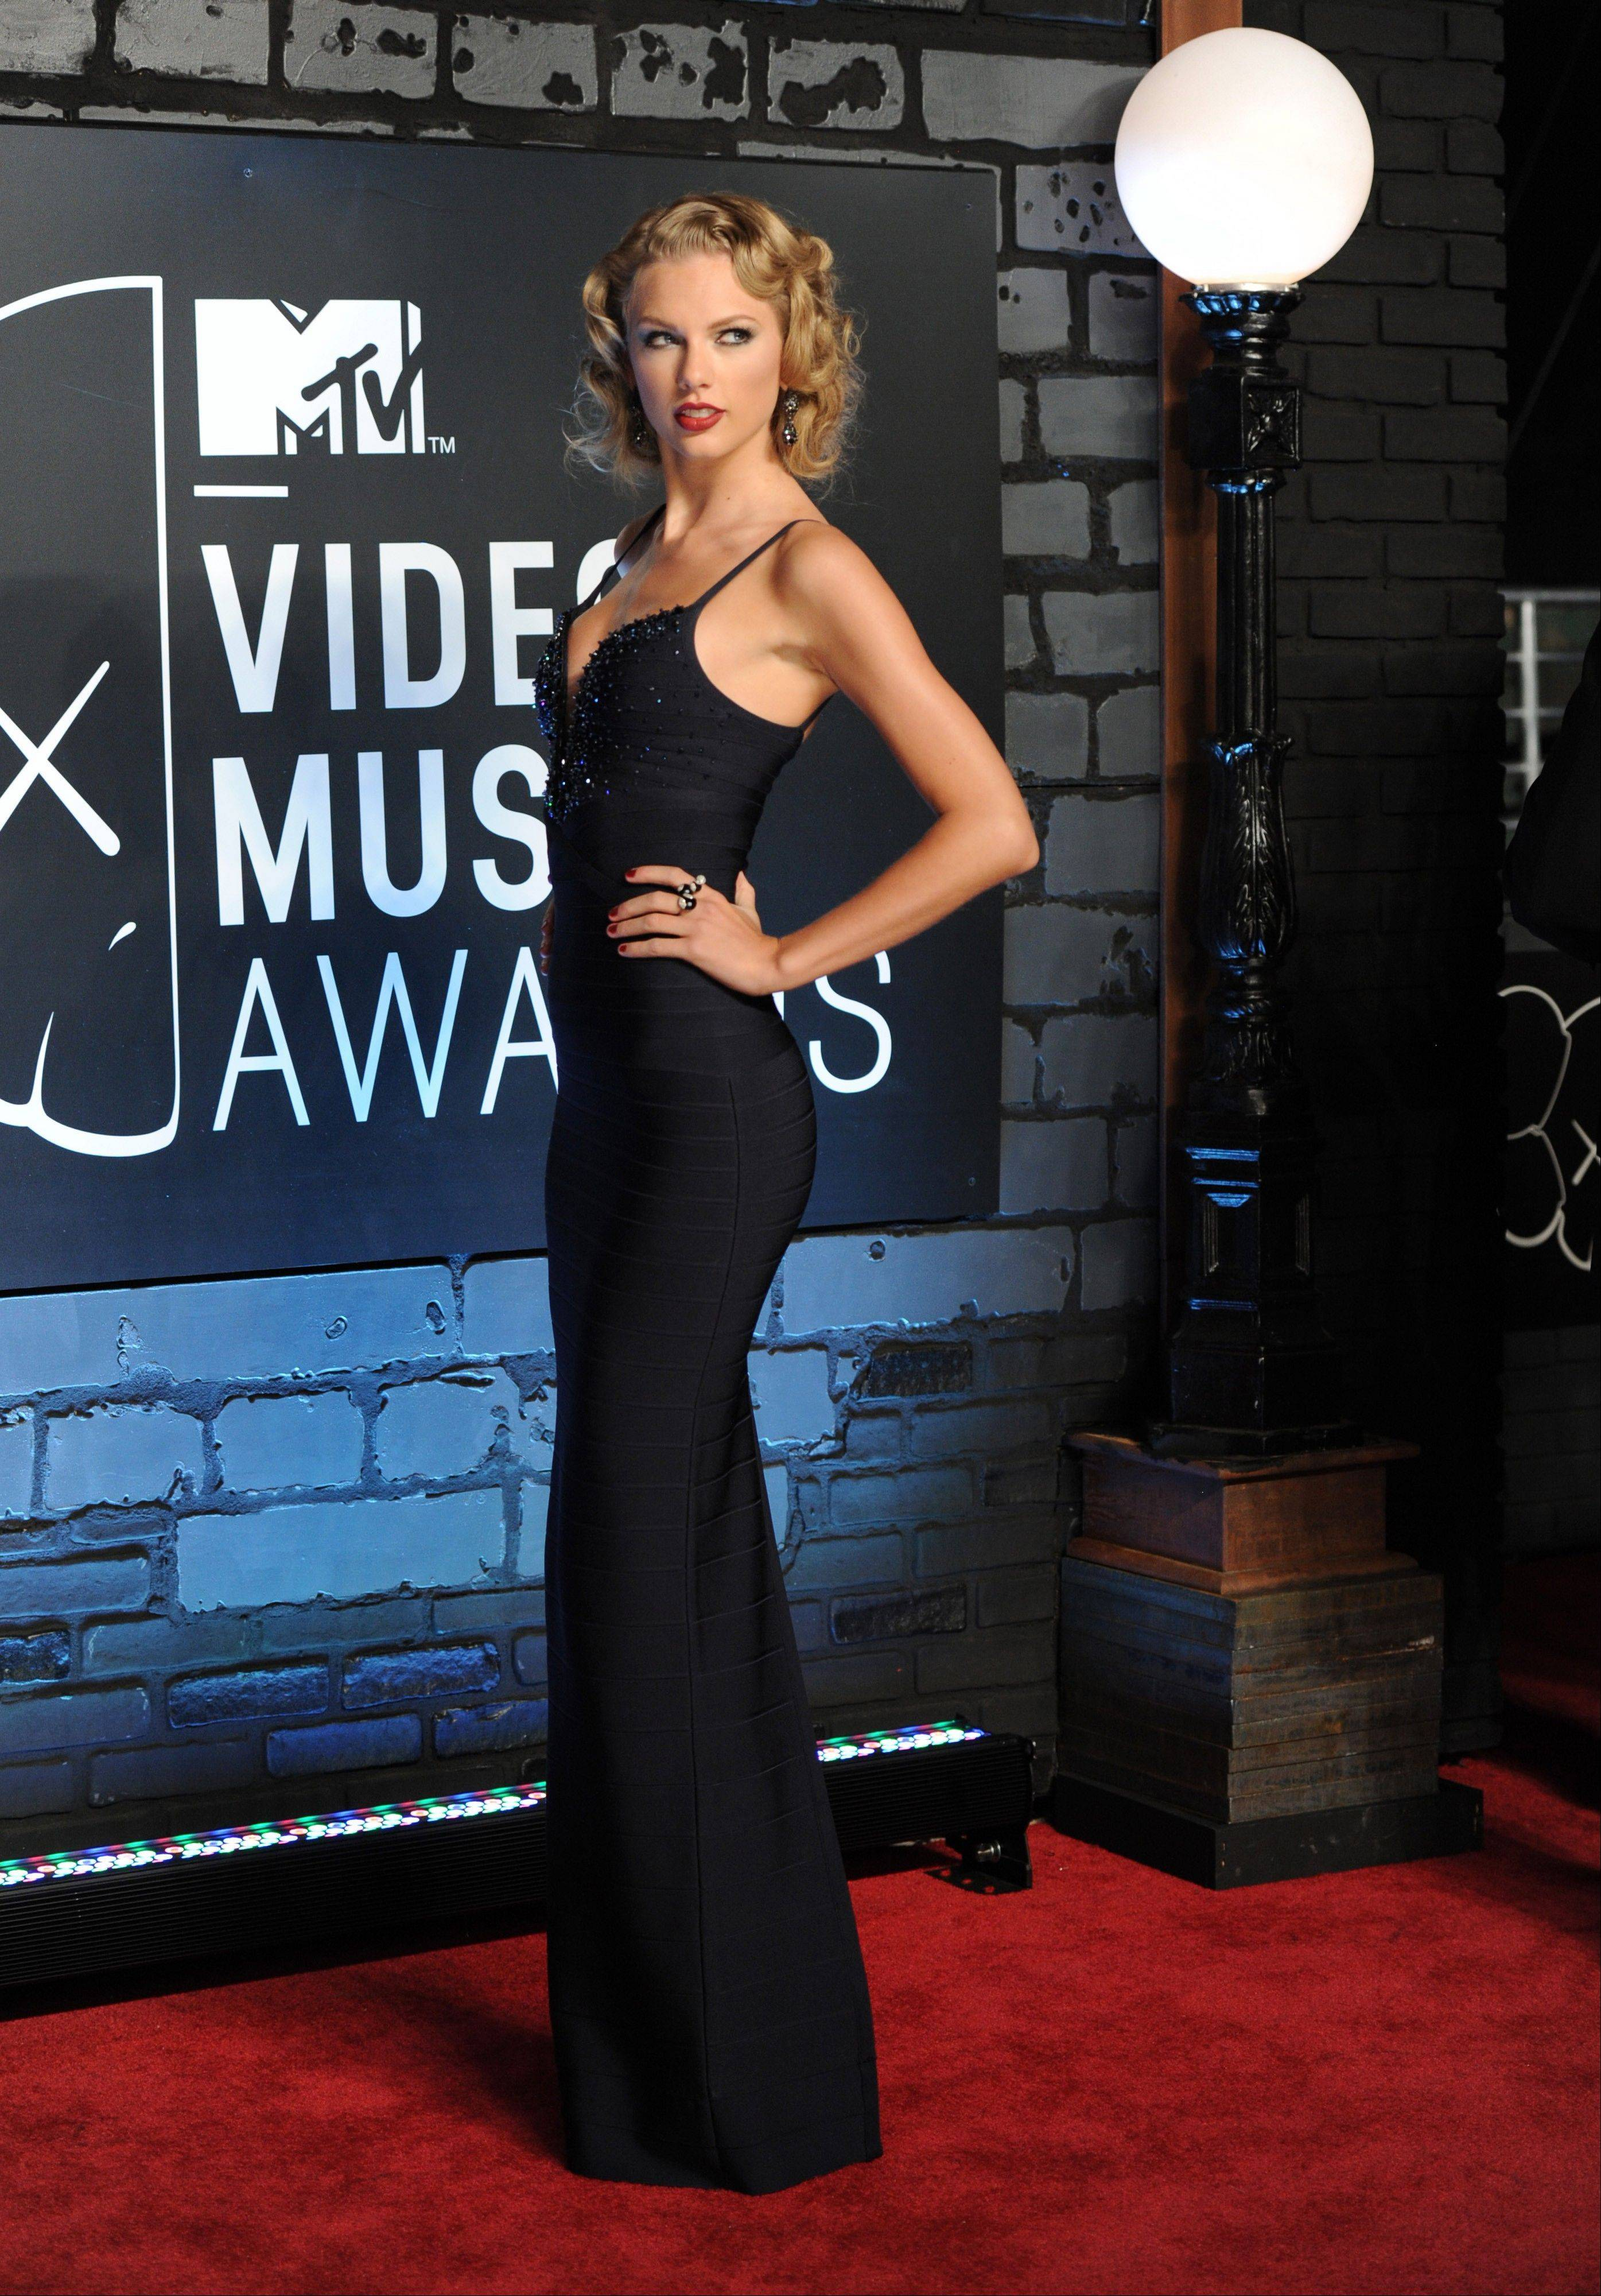 Taylor Swift arrives at the MTV Video Music Awards on Sunday, Aug. 25, 2013, at the Barclays Center in the Brooklyn borough of New York.